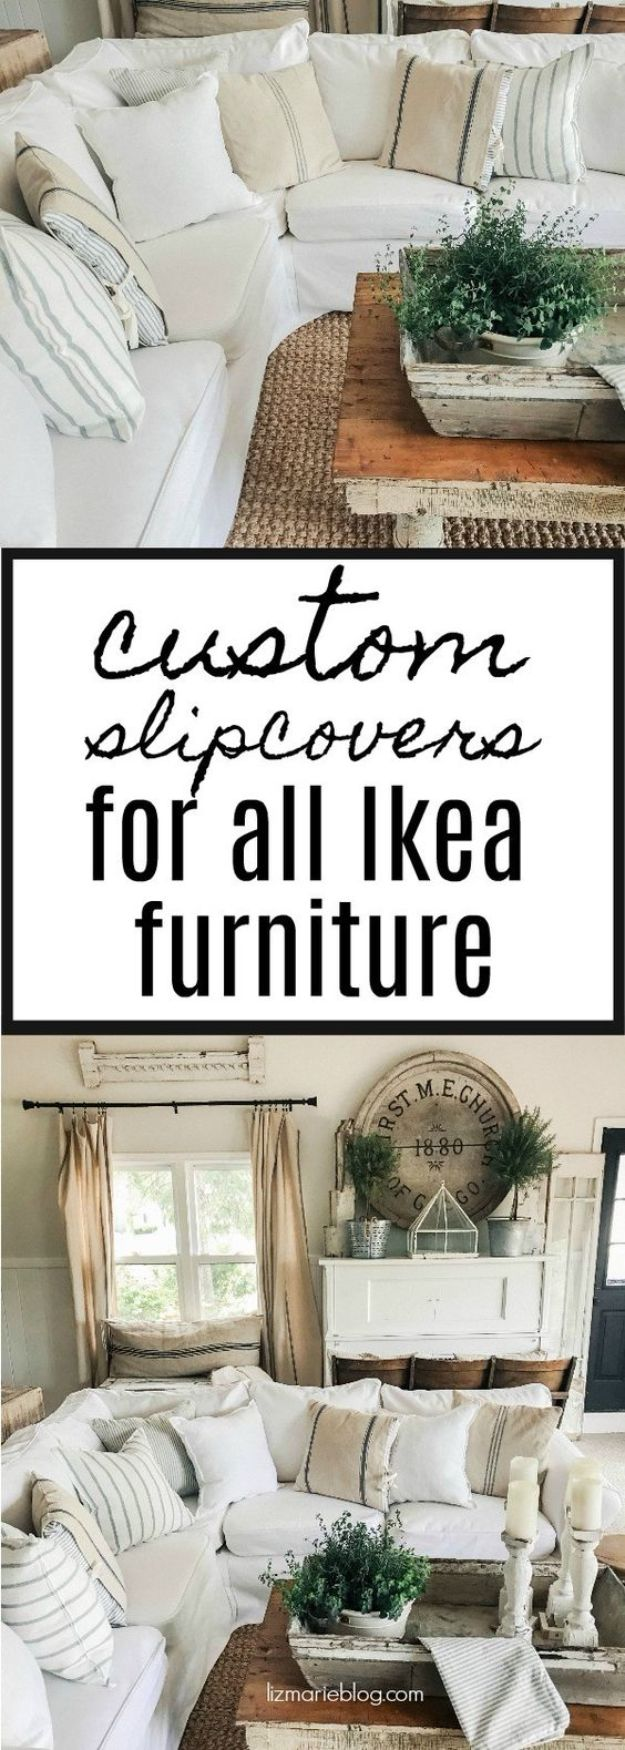 DIY Slipcovers - Custom Ikea Furniture Slipcovers - Do It Yourself Slip Covers For Furniture - No Sew Ideas, Easy Fabrics Four Couch and Sofa Cover - Chair Projects and Ideas, How To Make a Slip cover with step by step tutorial and instructions - Cool DIY Home and Living Room Decor #slipcovers #diydecor